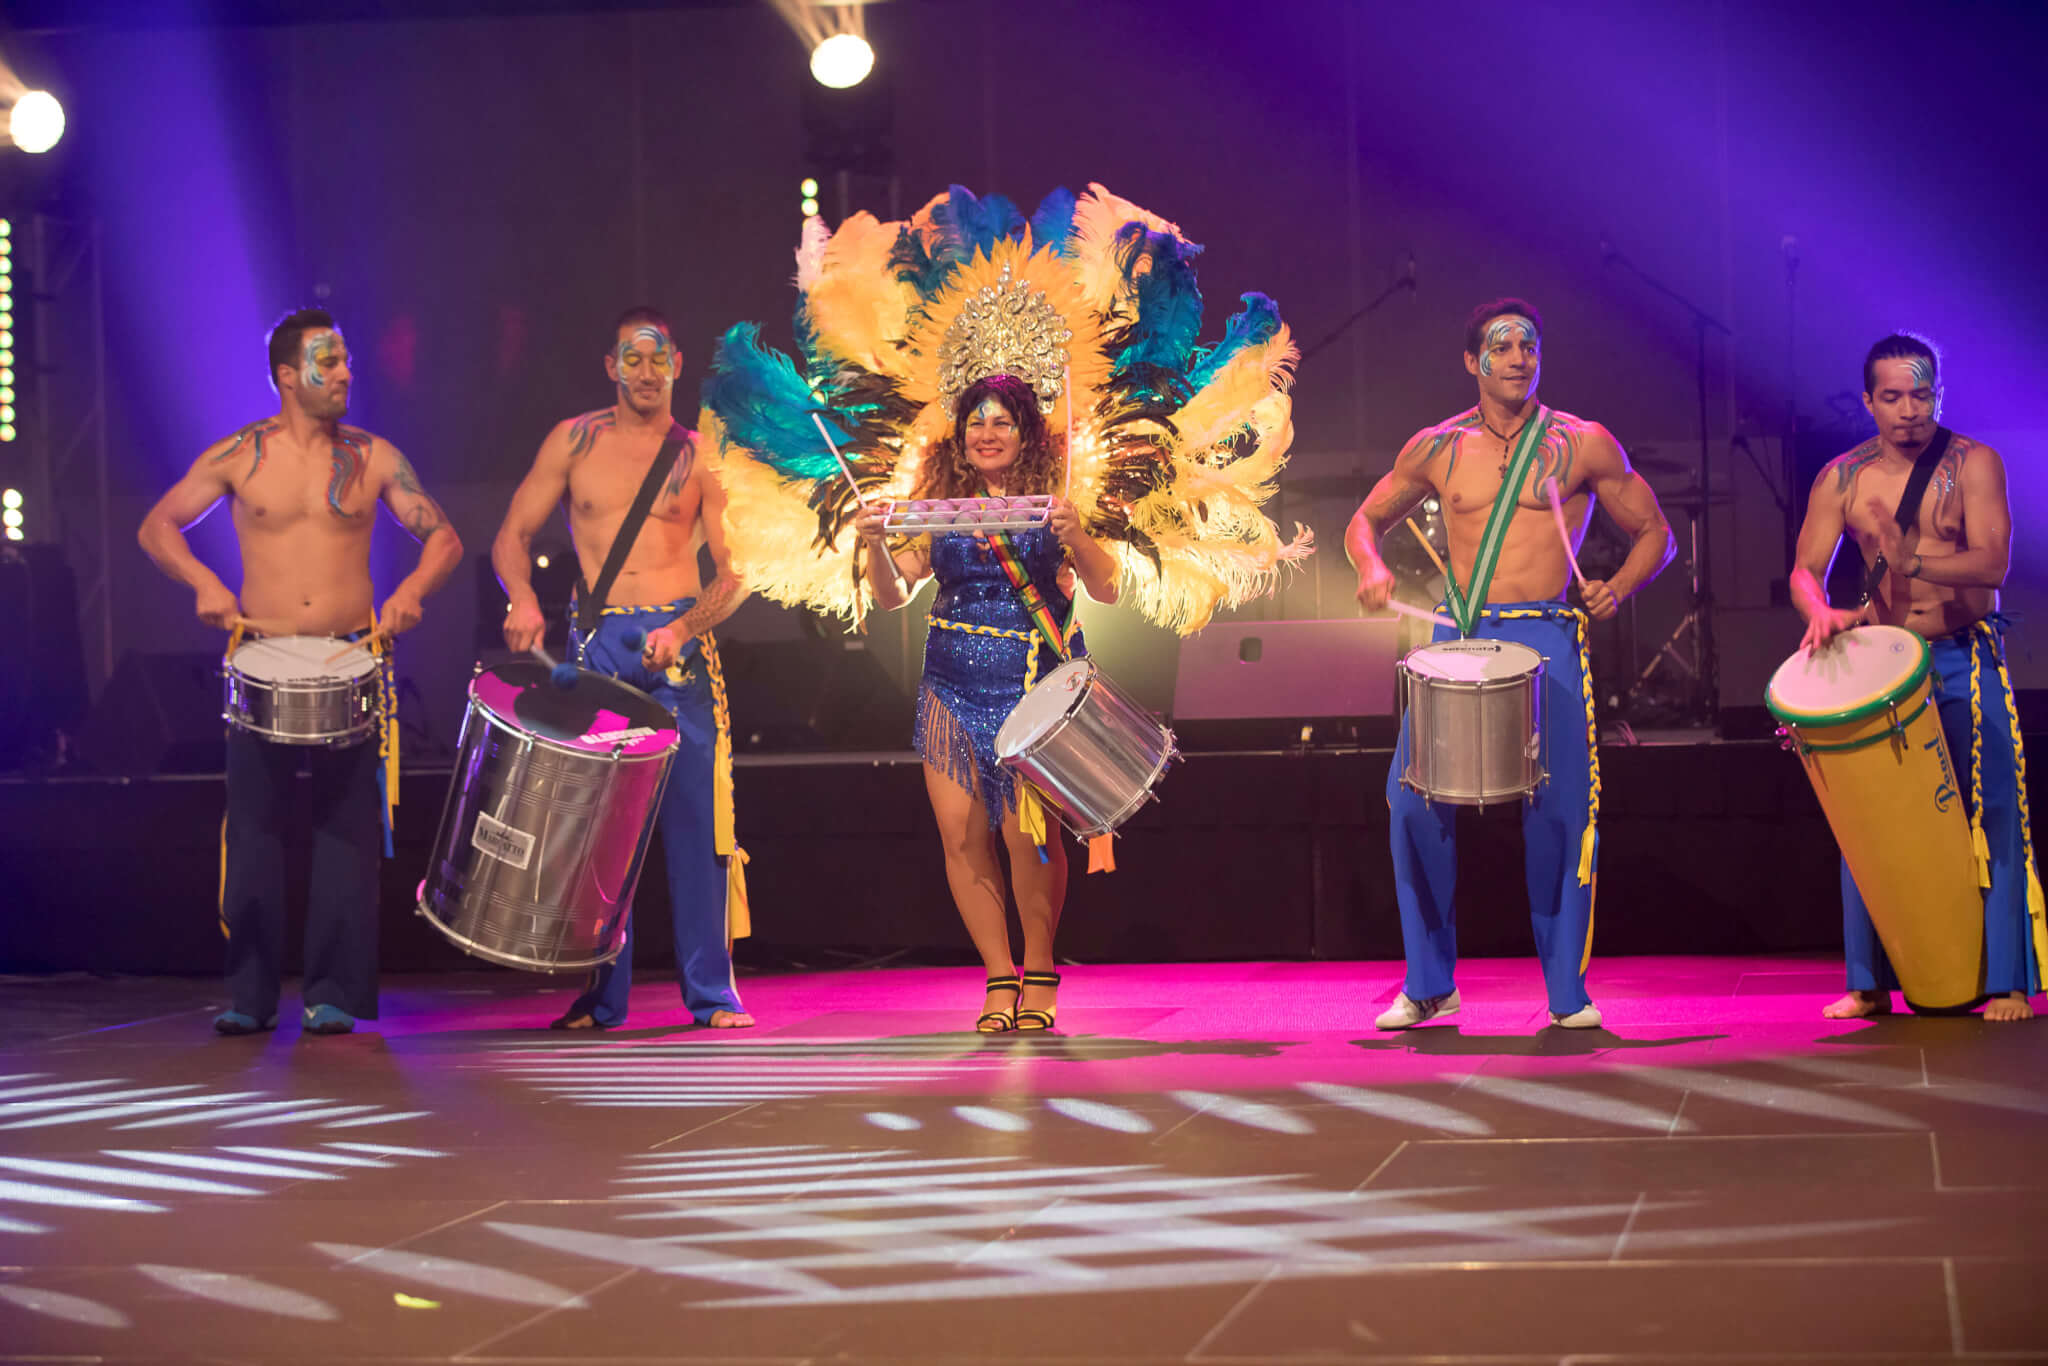 Rio Themed Corporate Event | Capoeira Performers